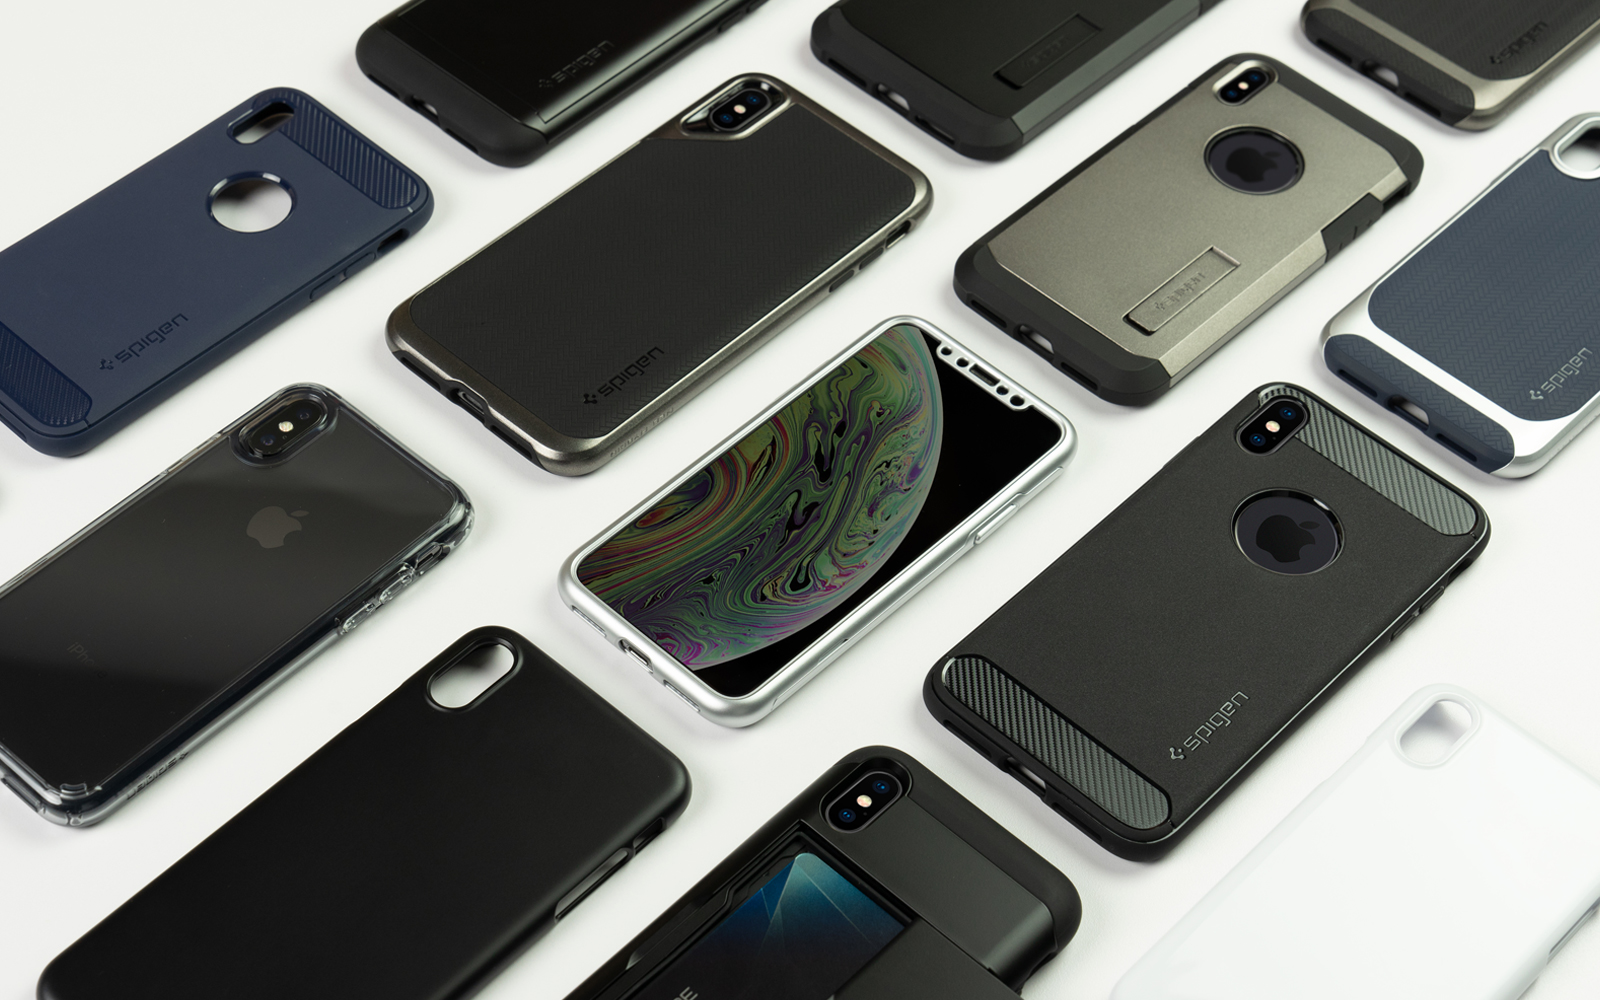 spigen s super slim defensive cases arrive for iphone xs iphone xs max iphone xr